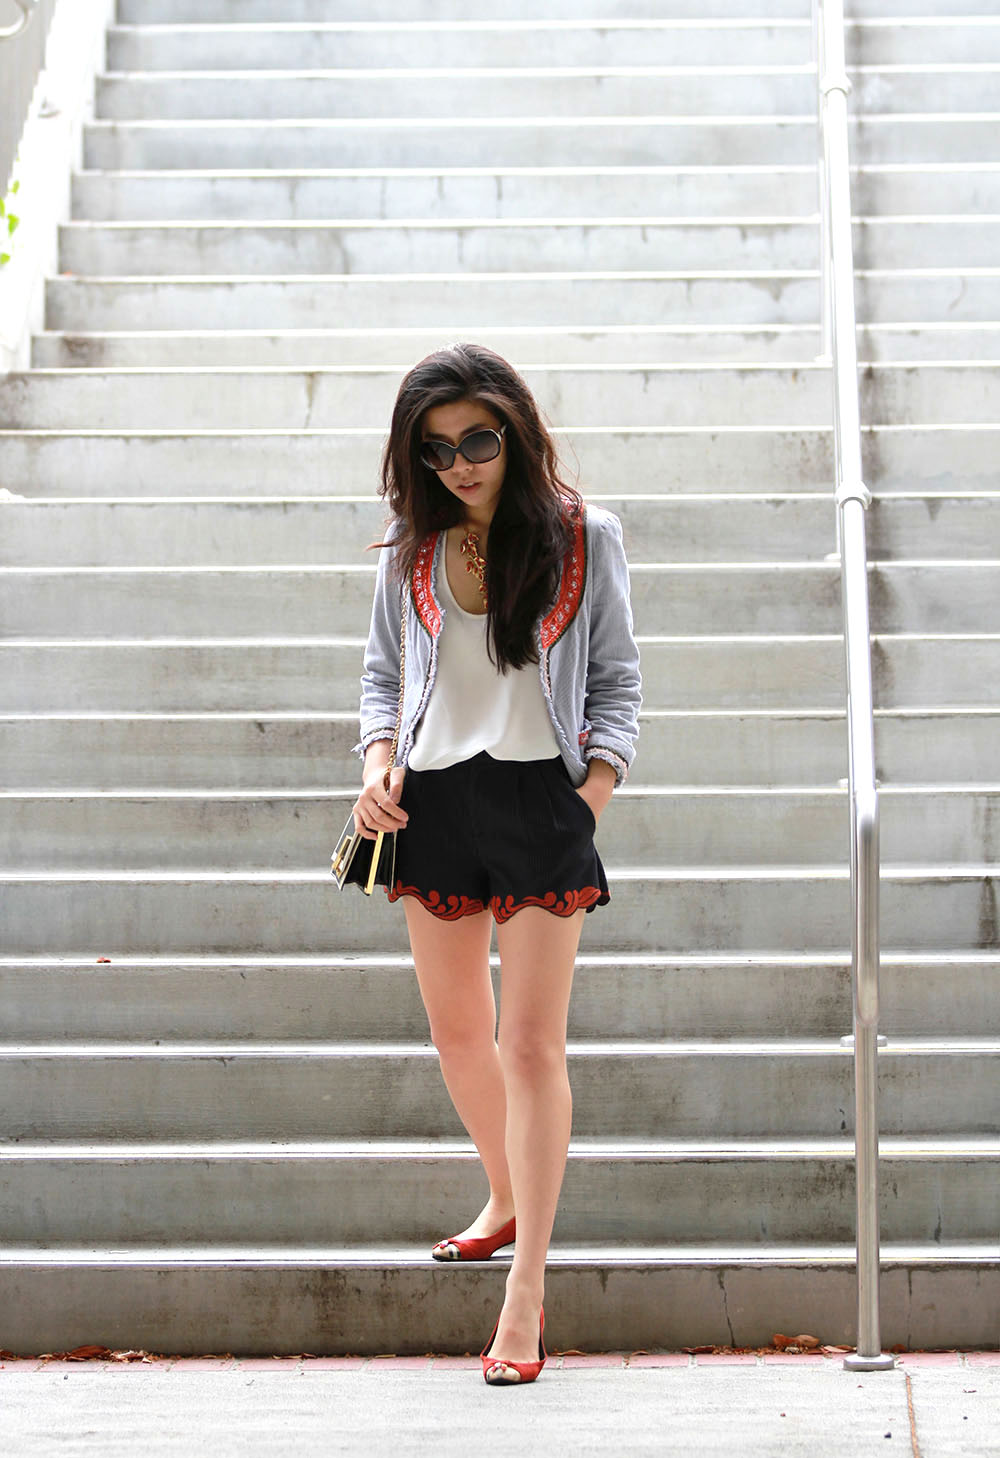 What to Wear to School_Classy and Sophisticated_Adrienne Nguyen_Invictus